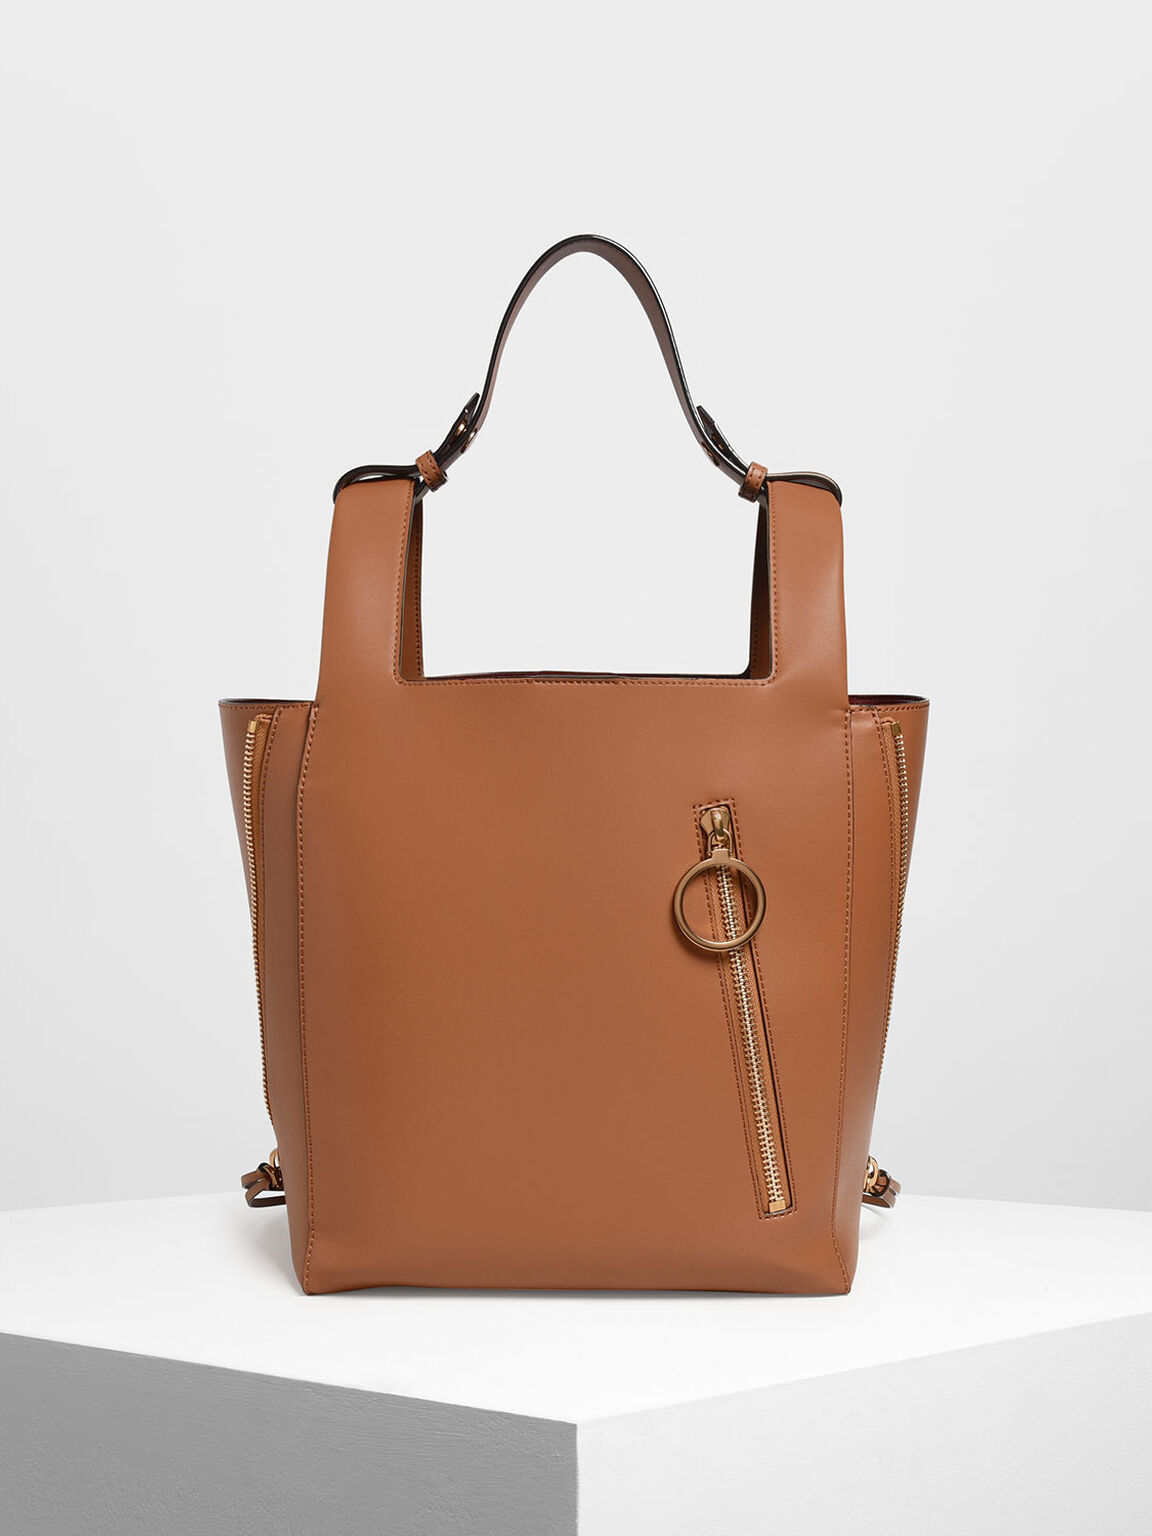 Ring Zip Pocket Square Handle Large Tote, Tan, hi-res